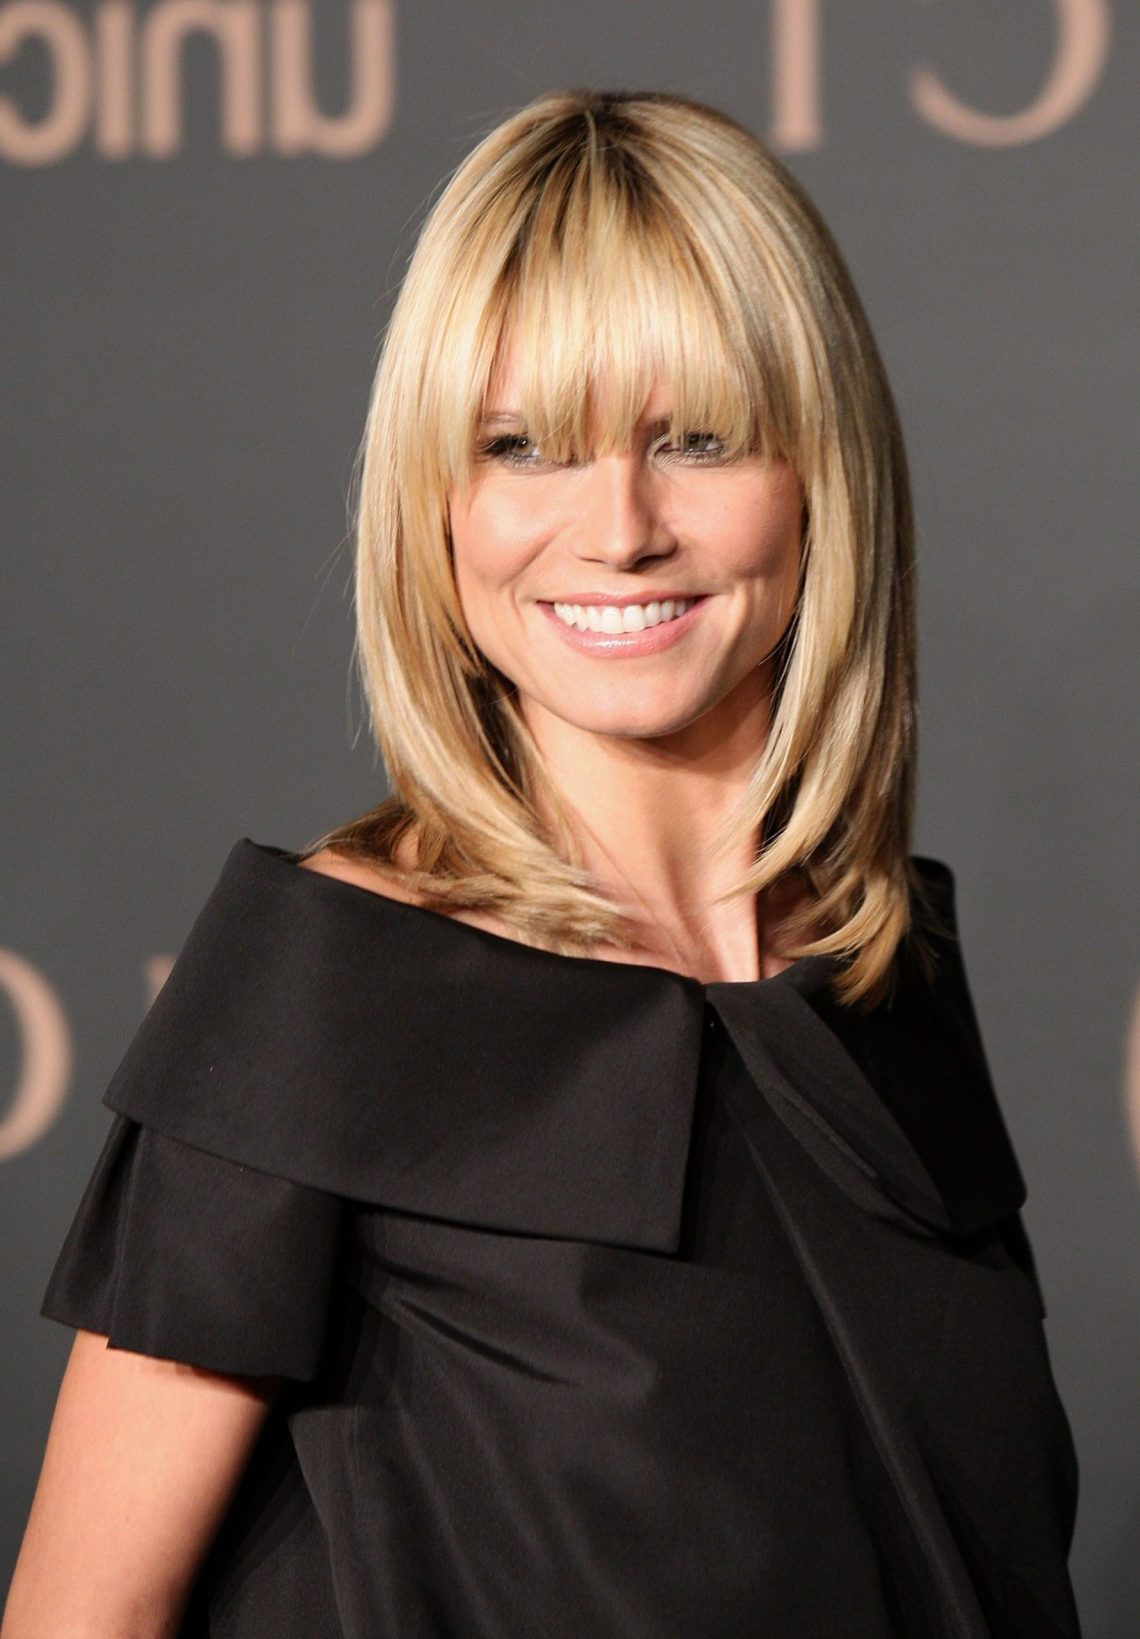 40 Best Hairstyles With Bangs Photos Of Celebrity Haircuts Medium Hairstyles With Fringe Bangs